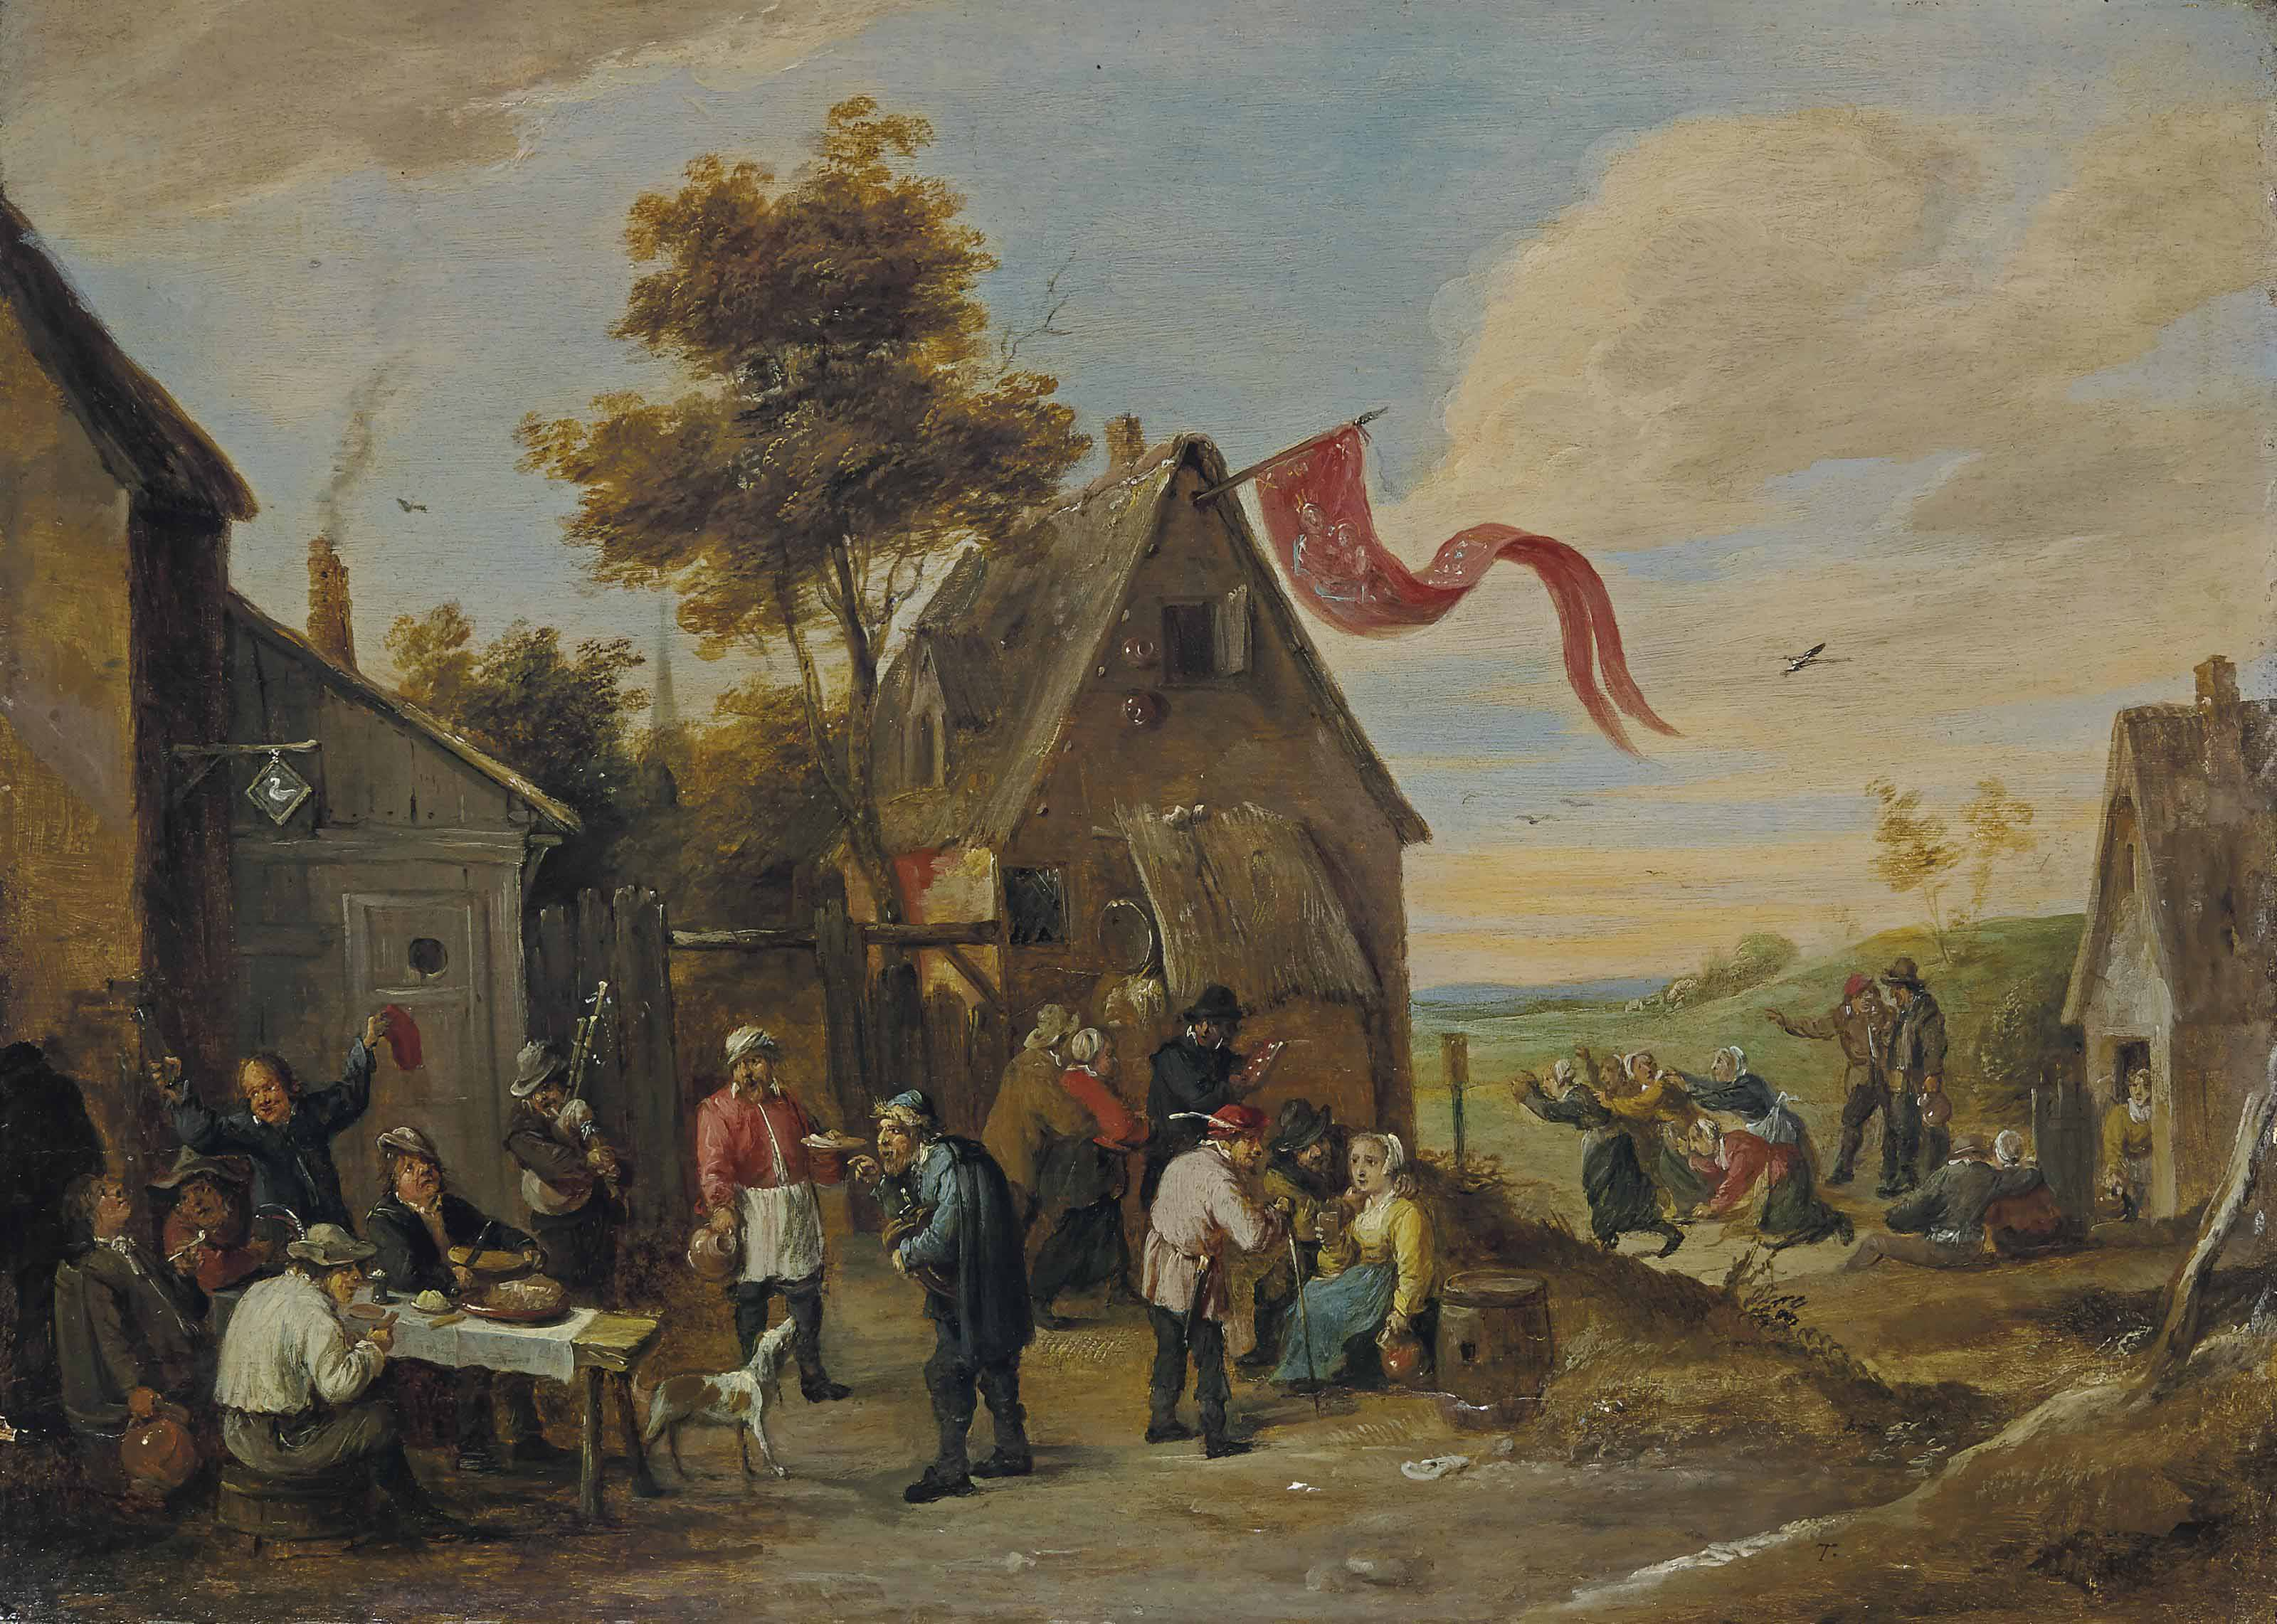 The Kermesse of Saint George with peasants feasting before an inn